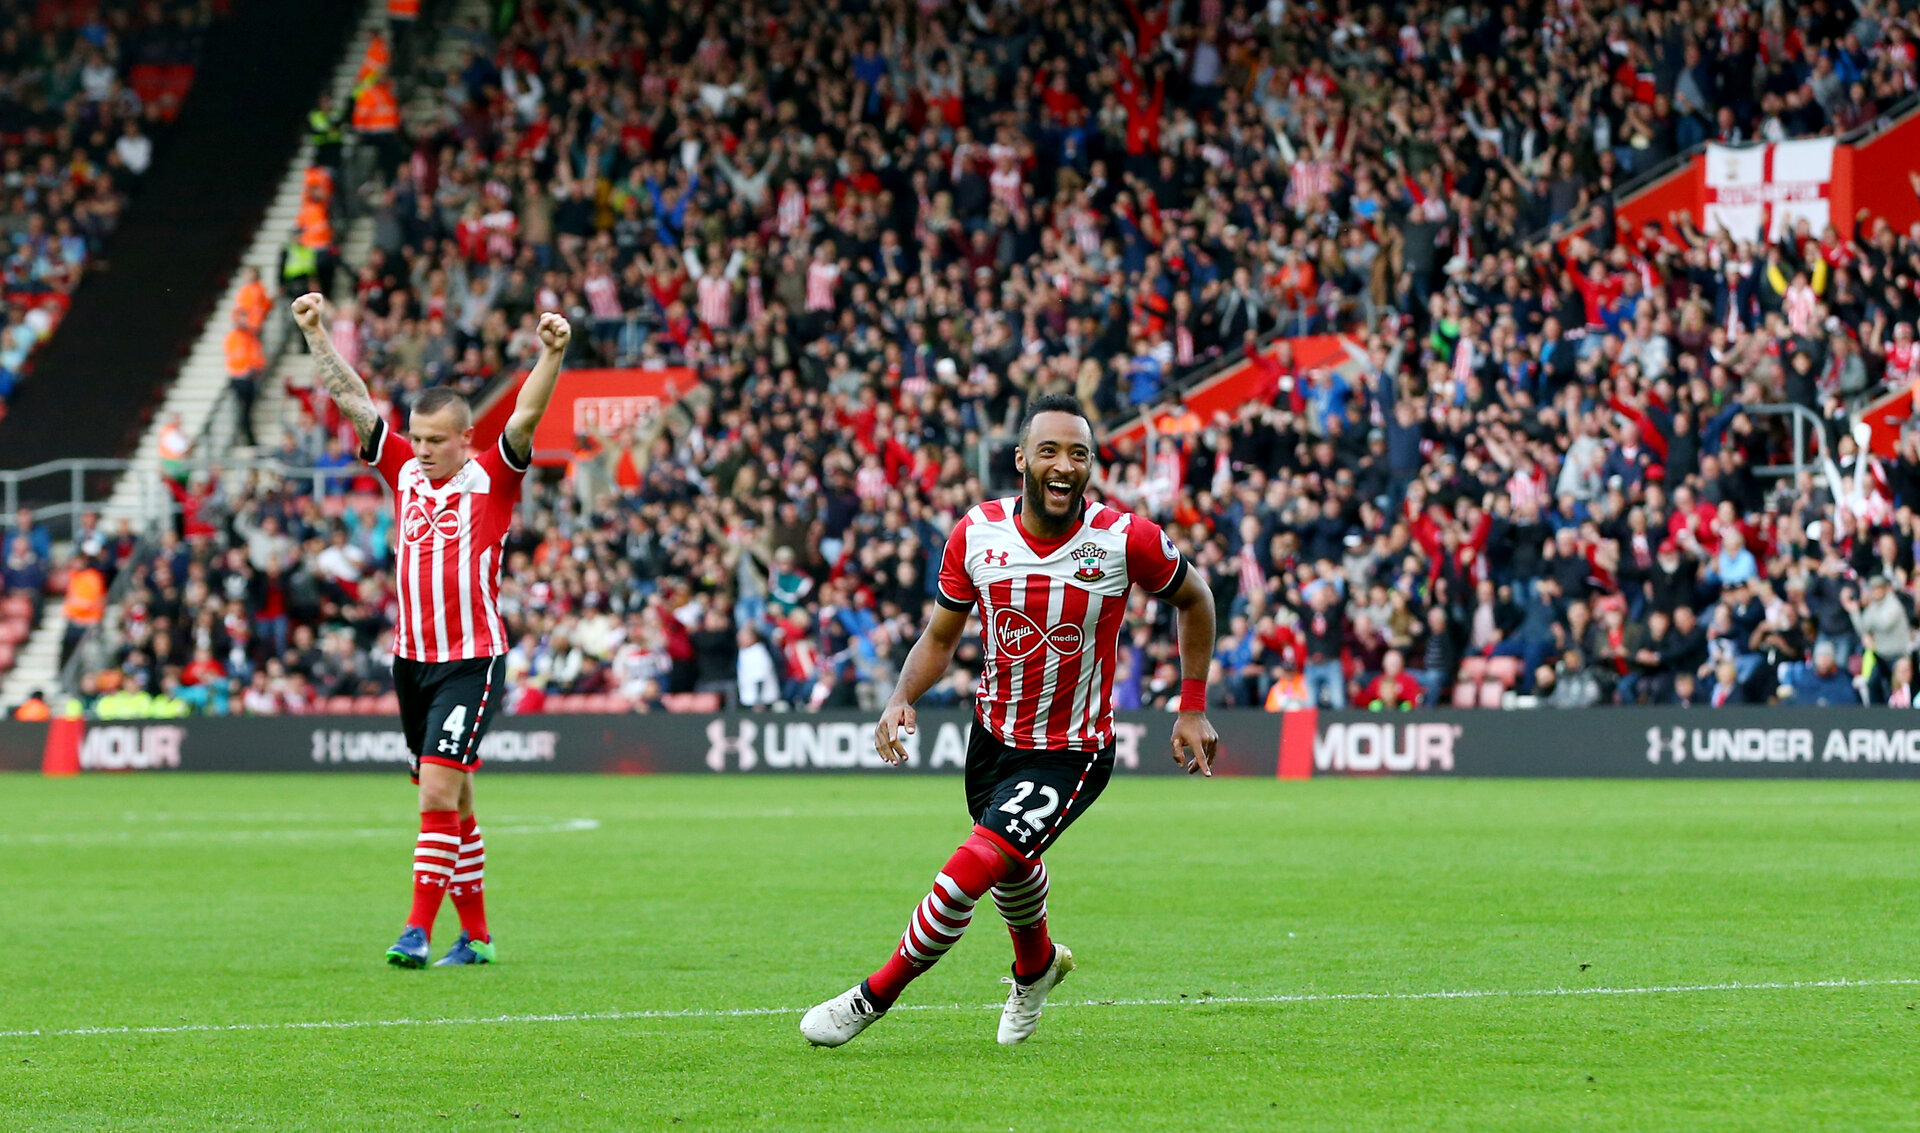 Nathan Redmond celebrates during the Premier League match between Southampton and Burnley at St Mary's Stadium, Southampton, England on 16 October 2016. Photo by Matt Watson/SFC/Digital South.